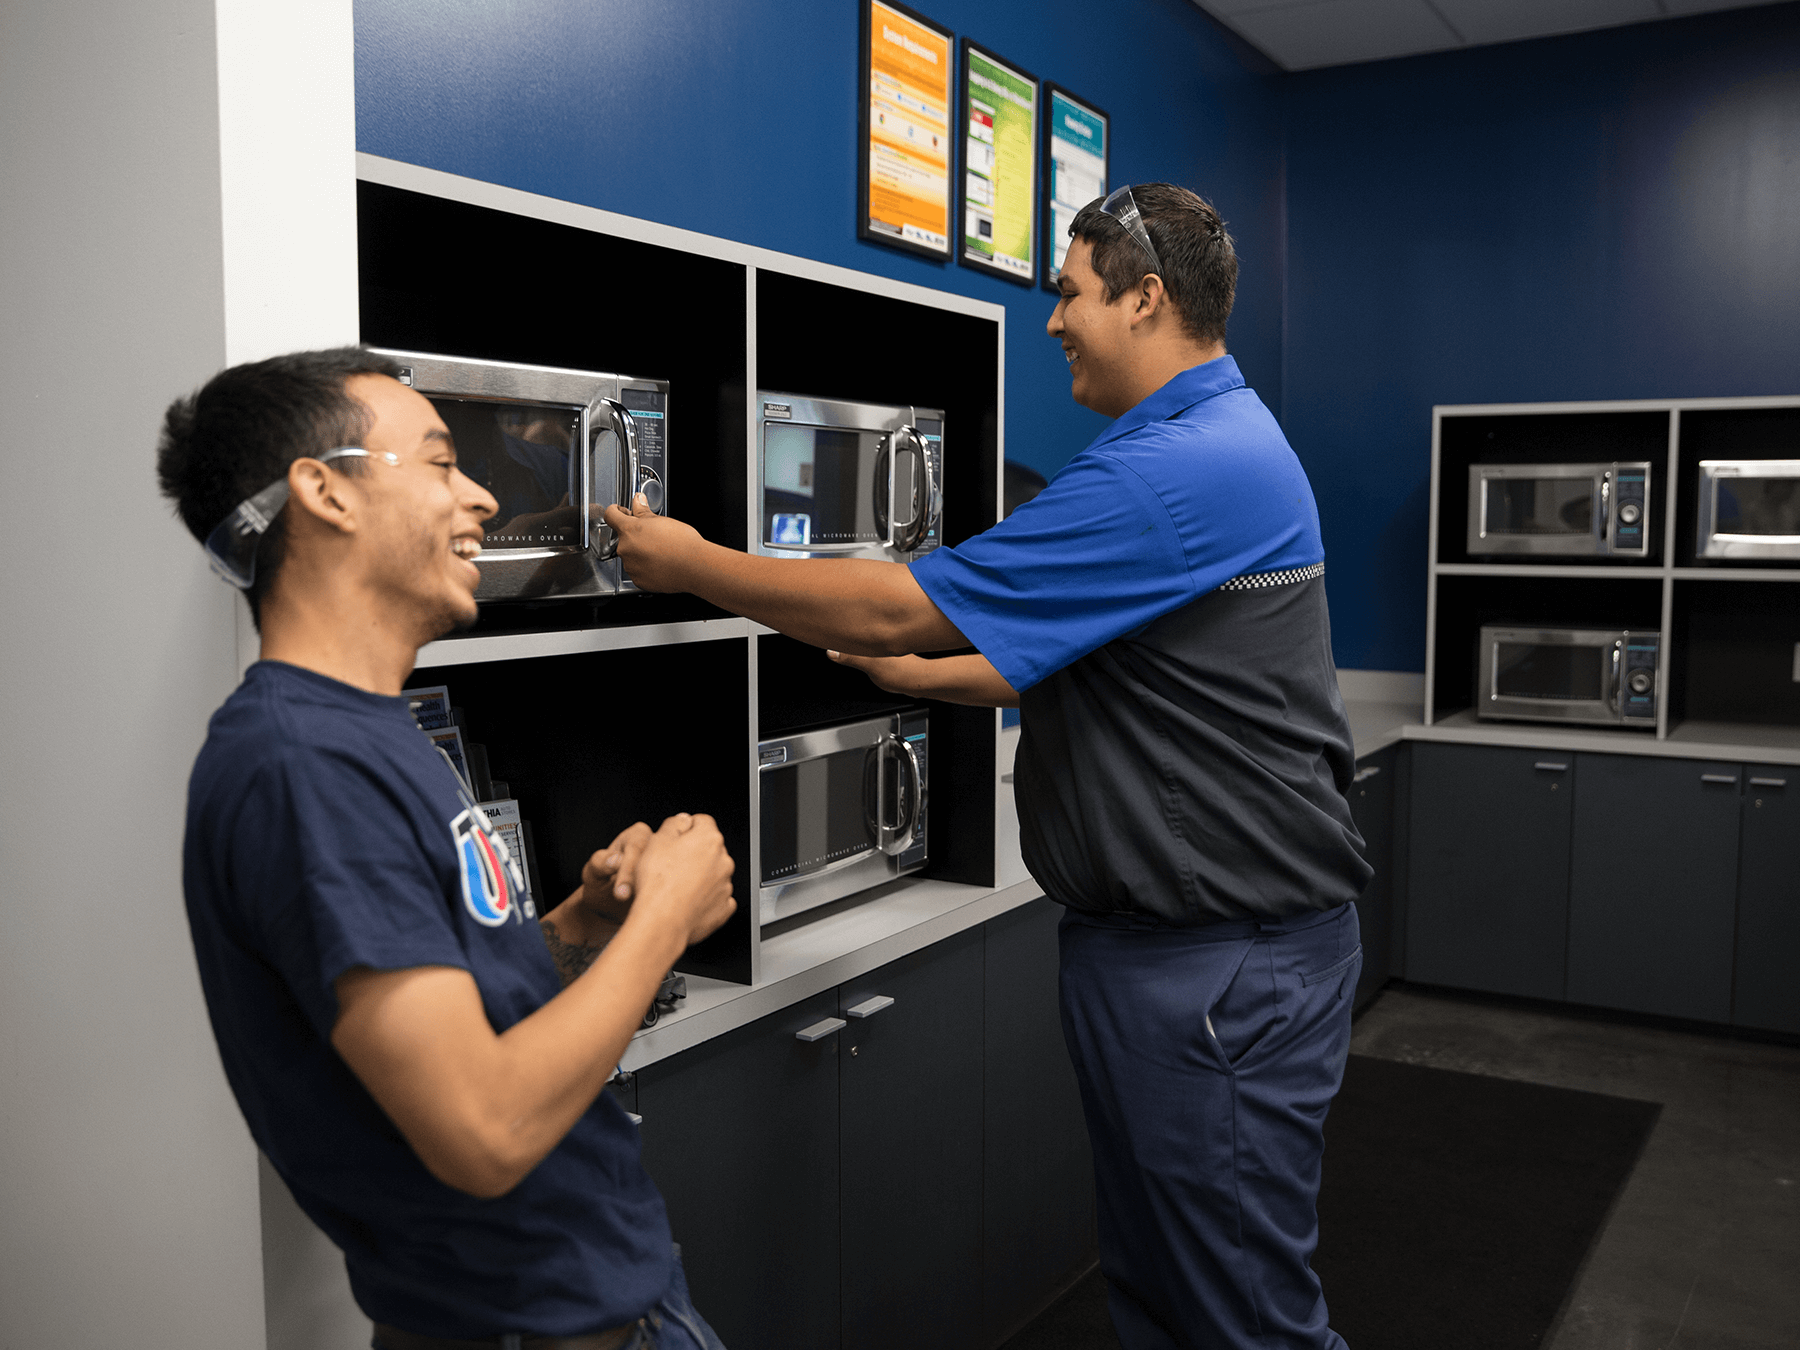 Students laughing near a microwave in the break room at Long Beach campus